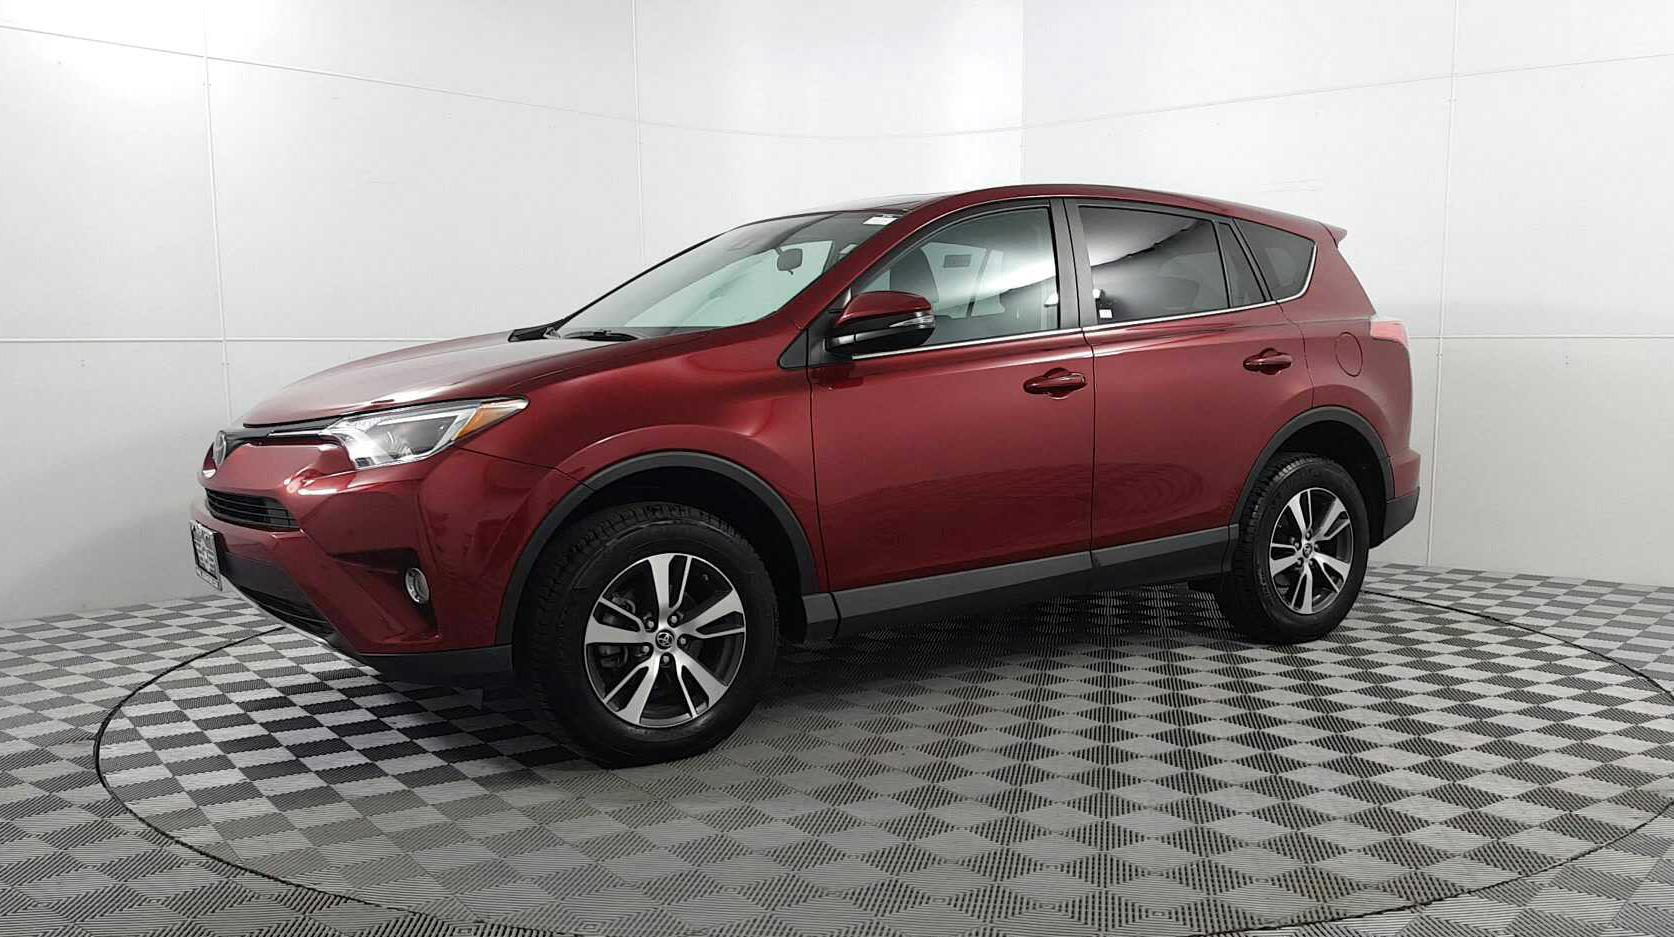 Toyota RAV4 Owners Manual: Tilting up and down